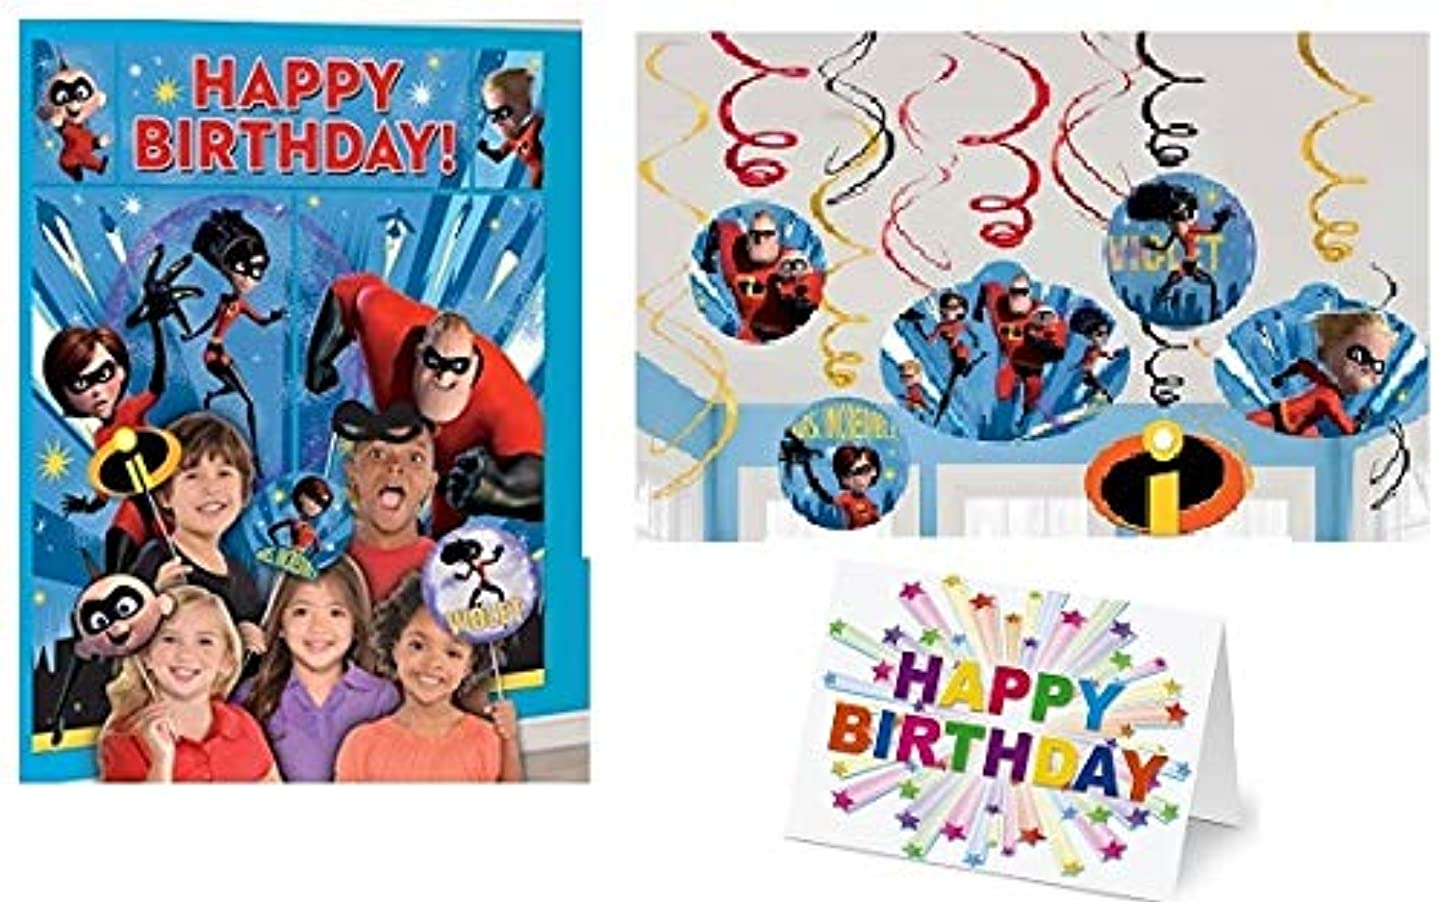 Incredibles 2 Movie Party Scene Setter Wall Decoration with Photo Props (15 PC) Swirl Wall Decoration (12 PC) Party Decoration Plus Birthday Card